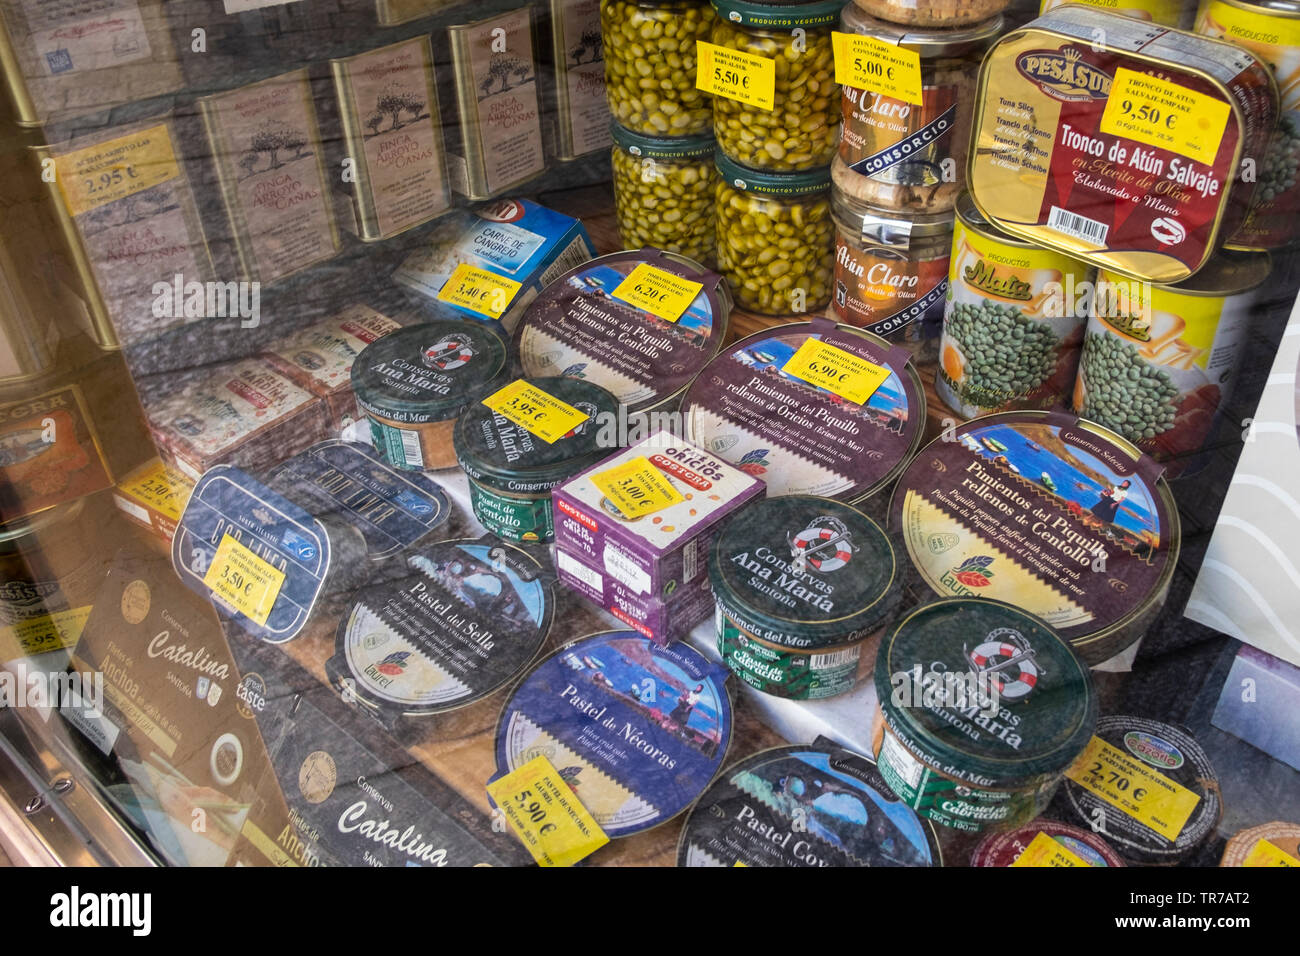 Food shop selling packaged and preserved  food in Malaga, Spain. - Stock Image